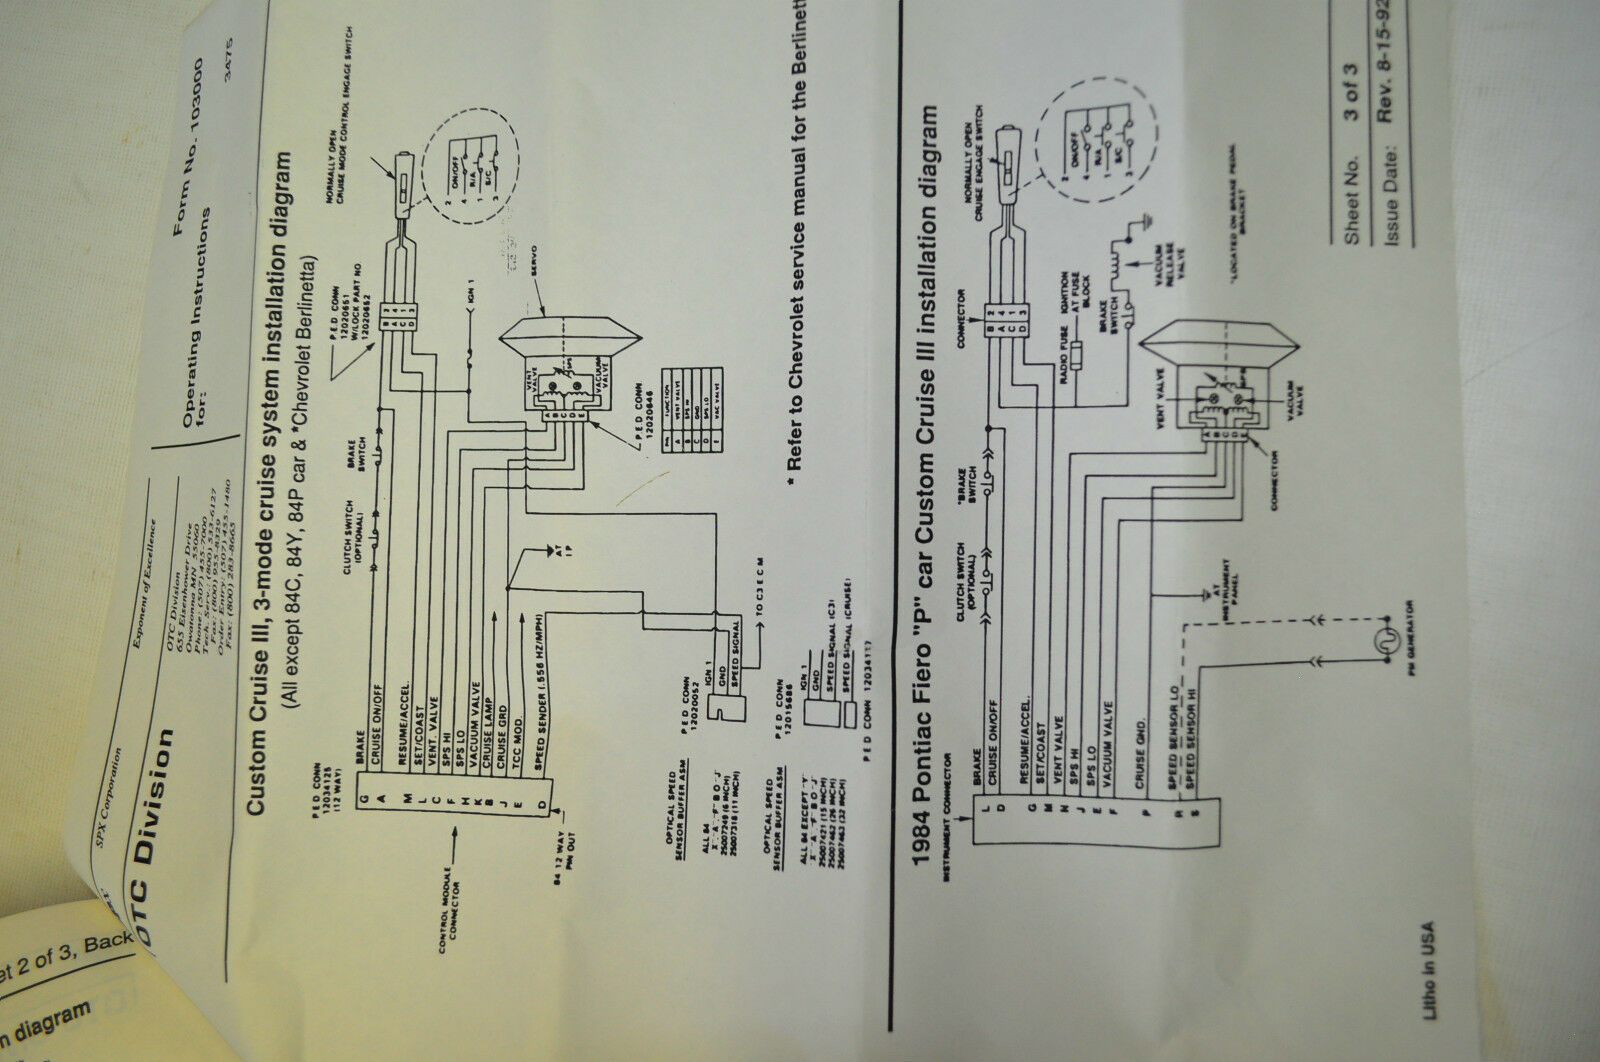 Fiero Cruise Control Wiring Diagram Otc 3475 Ac Custom Tester Iii For Gm Vehicles 1983 And Up Ebay